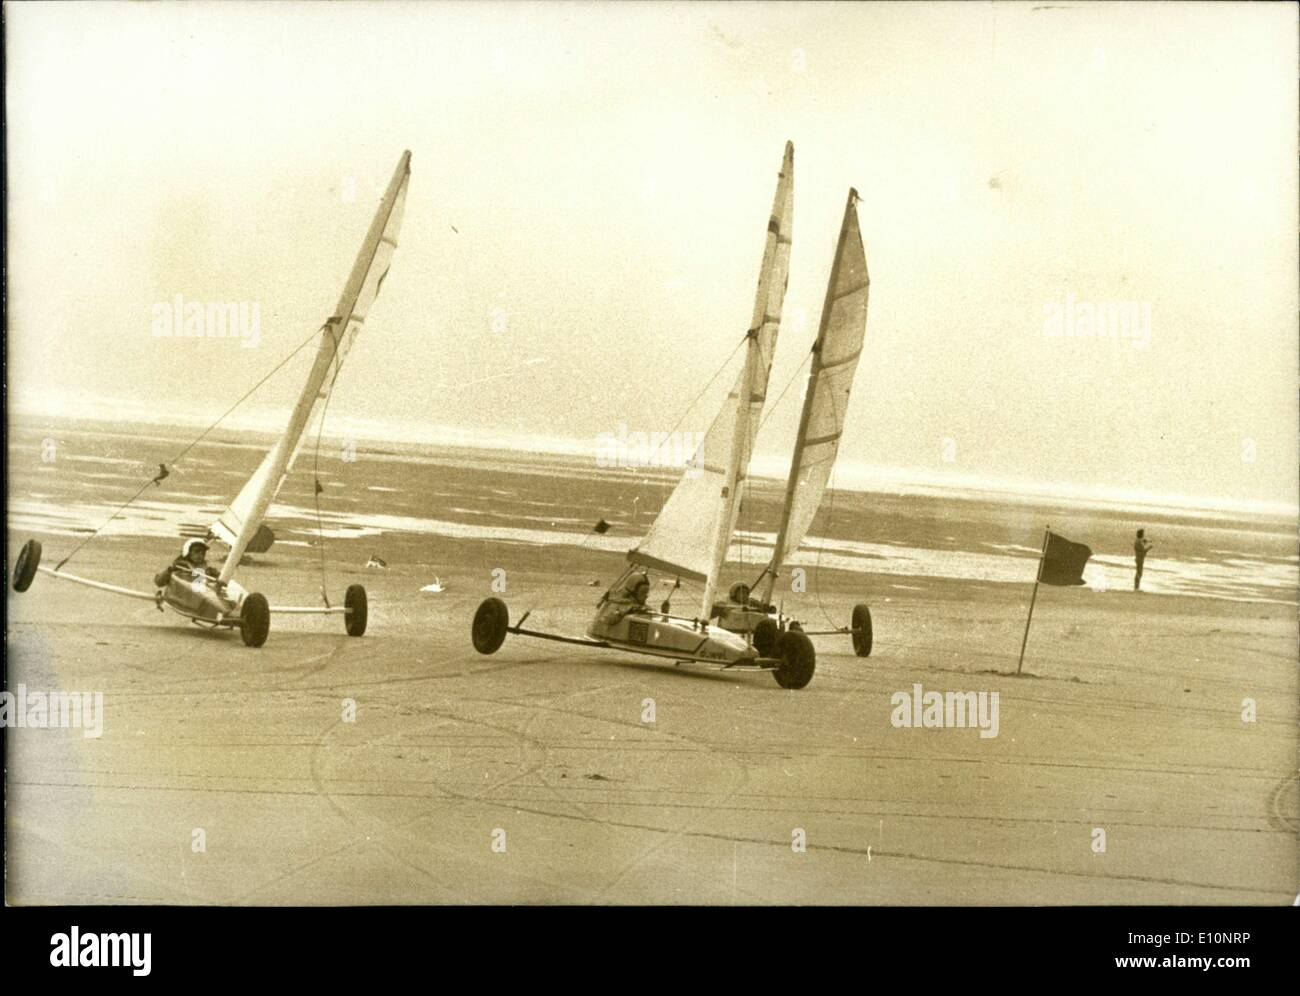 Sep. 03, 1973 - Sand yachting race at course for class III - Stock Image